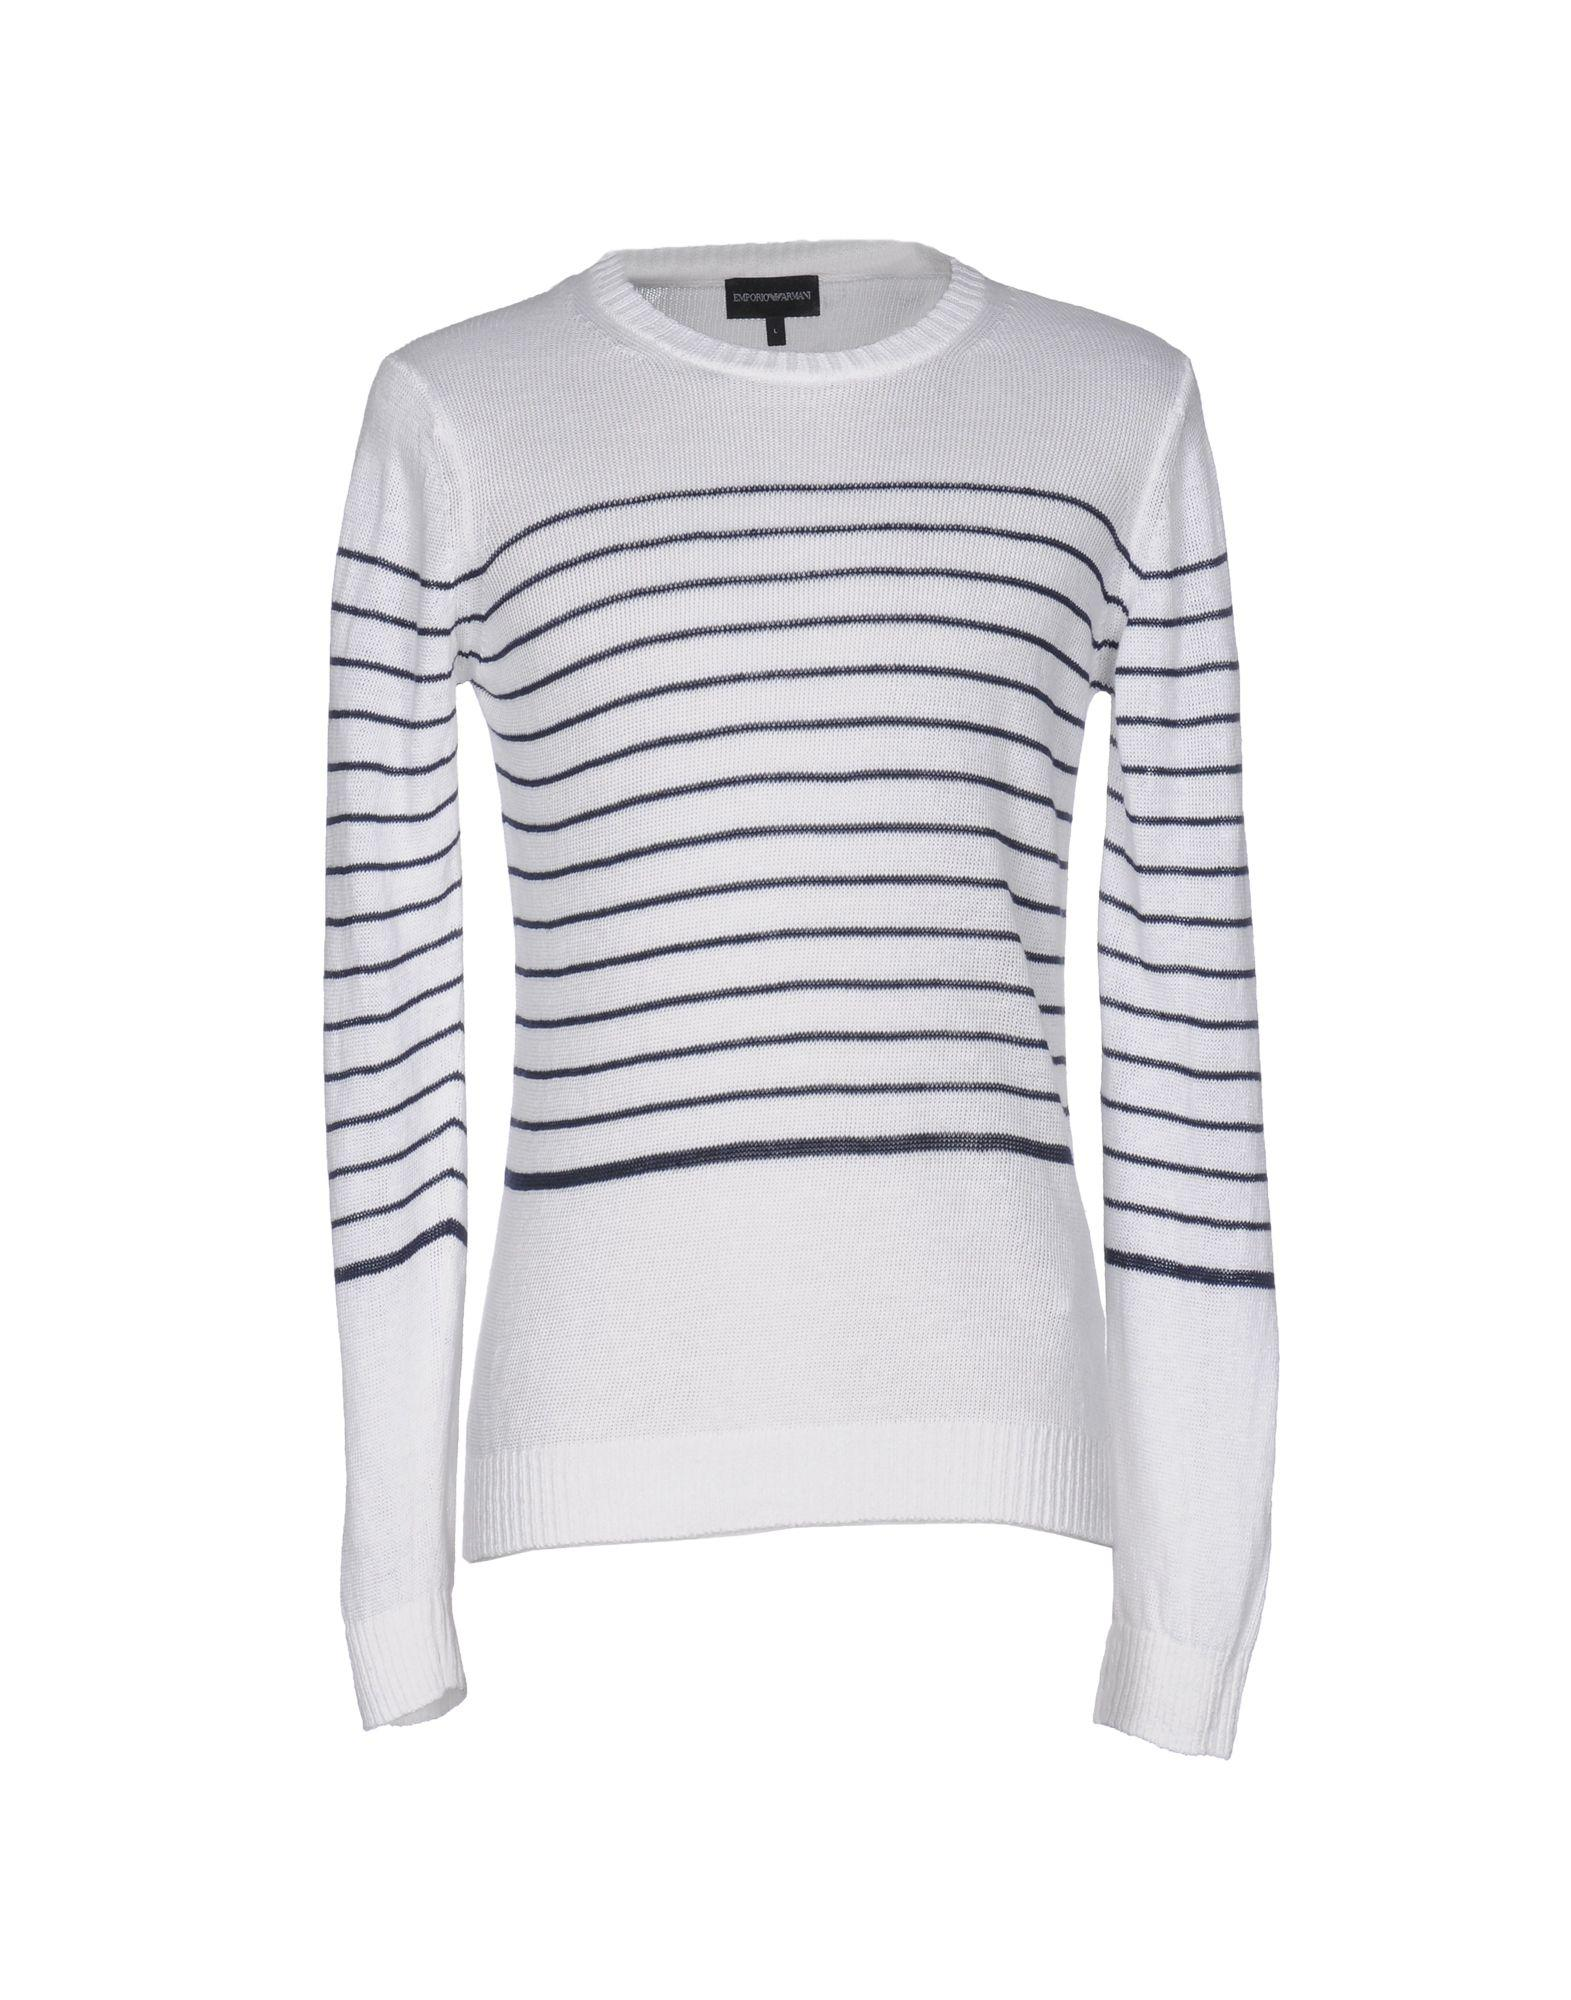 emporio armani sweater in white for men lyst. Black Bedroom Furniture Sets. Home Design Ideas